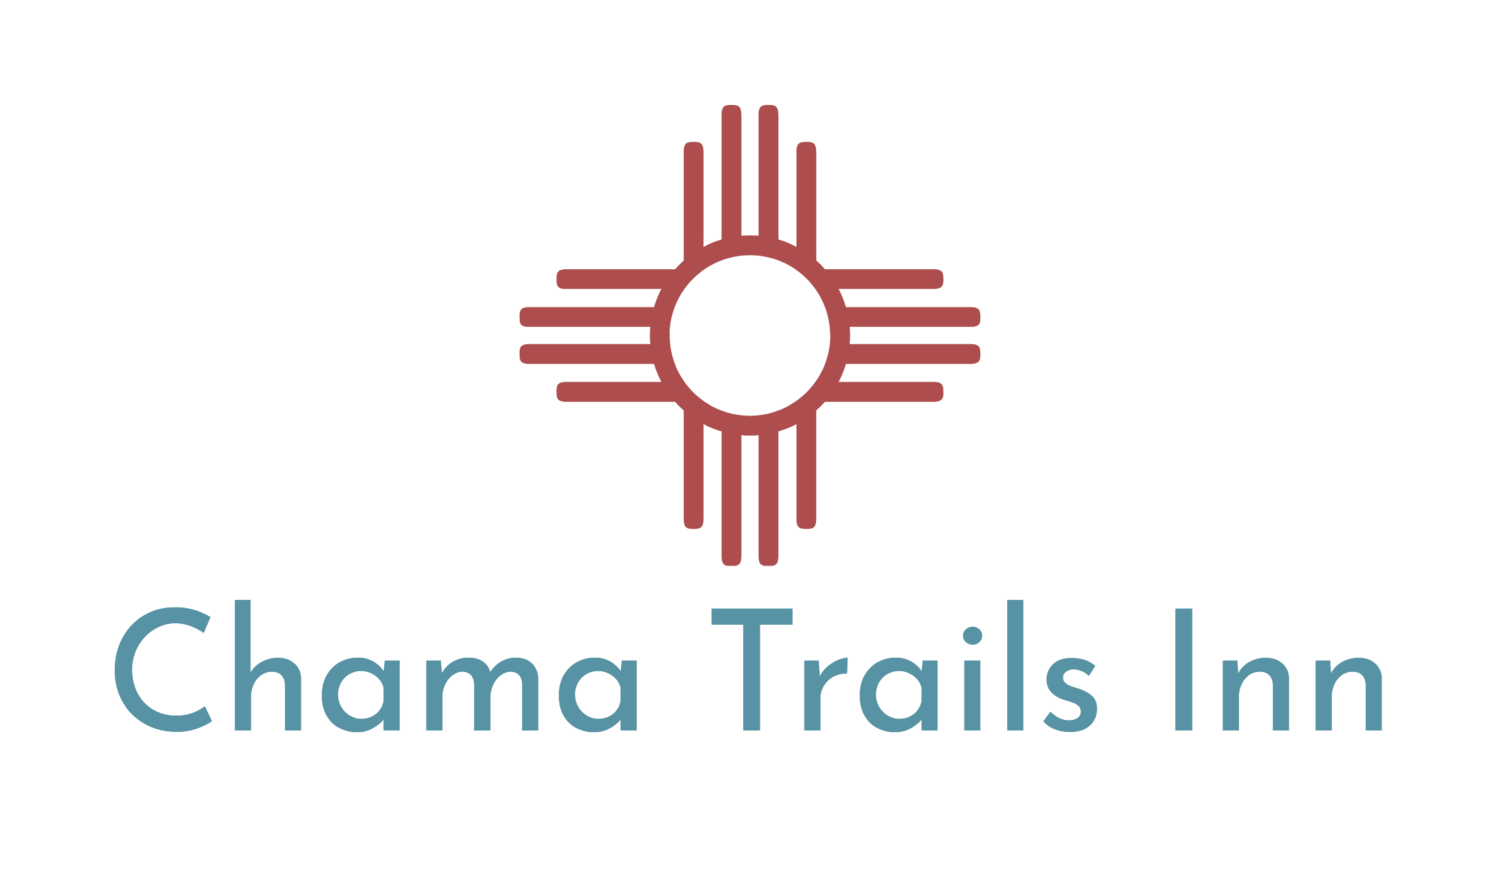 Chama Trails Inn